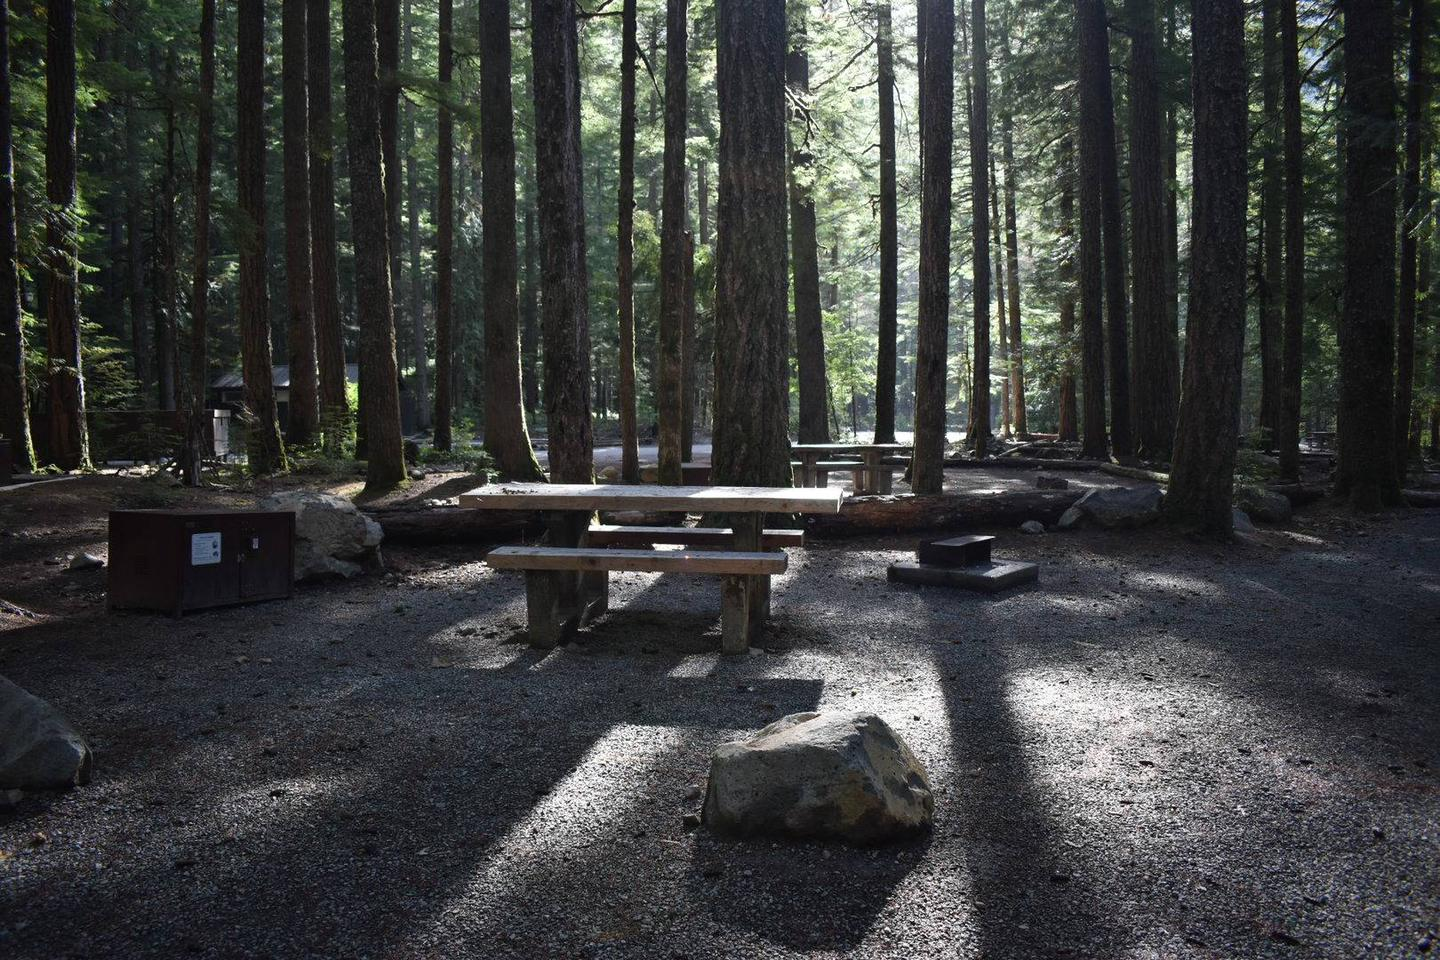 Ohanapecosh Campground - Site D012 AmenitiesCampers are provided with a picnic table, food storage box, and a fire pit.